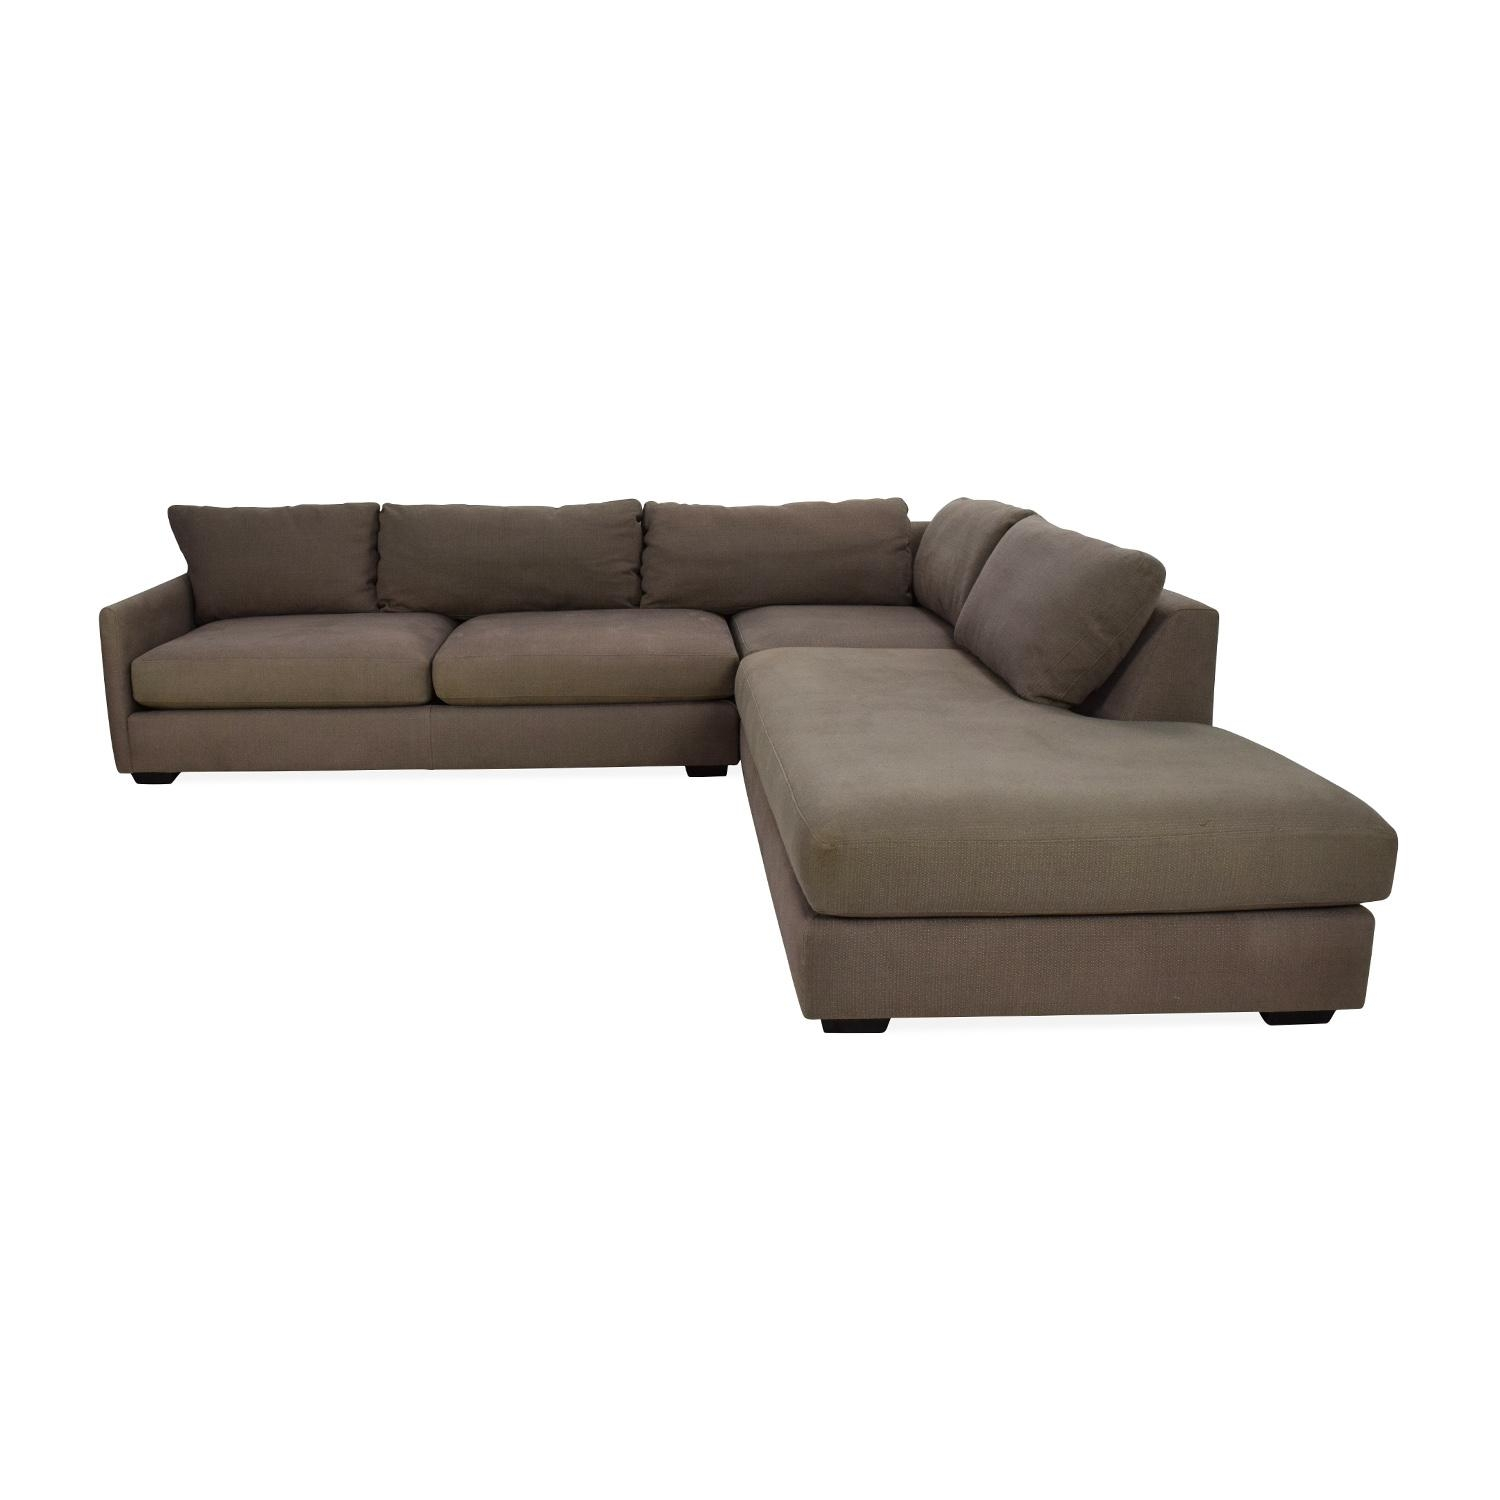 82% Off – Crate And Barrel Crate & Barrel Domino Sectional Sofa Inside Crate And Barrel Sleeper Sofas (Image 3 of 20)